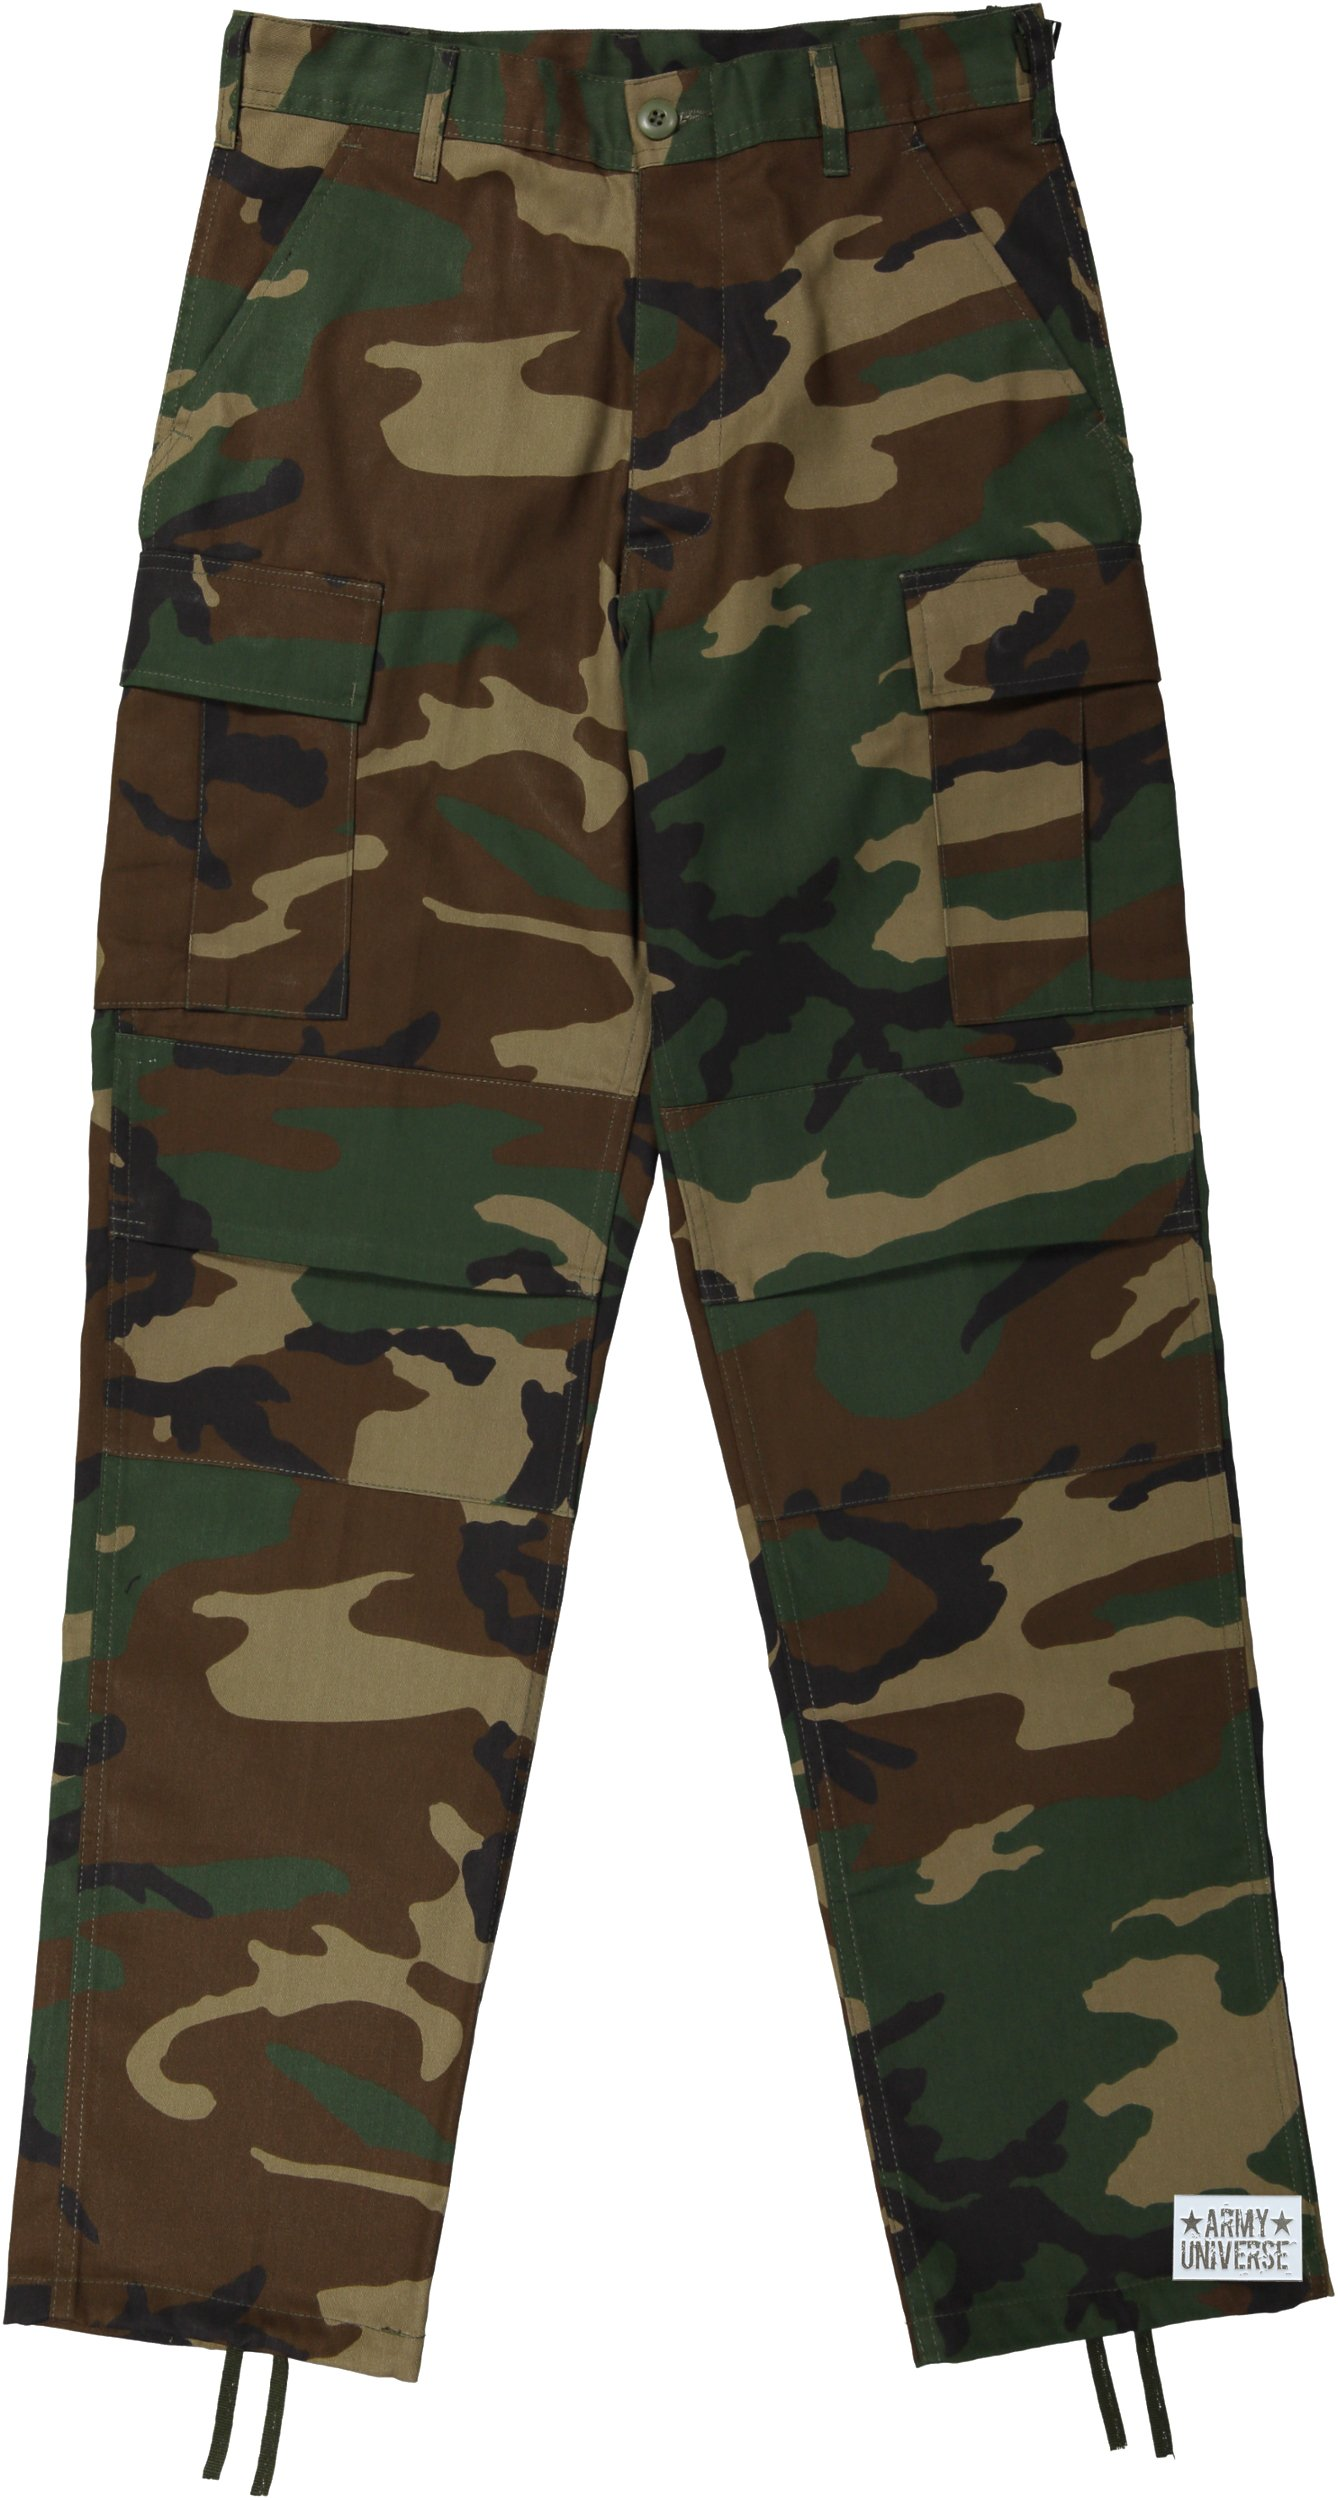 Mens Woodland Camo Poly/Cotton Army Cargo Fatigues Uniform Military BDU Pants with Pin - (W 47-51 - I 29.5-32.5) 3XL